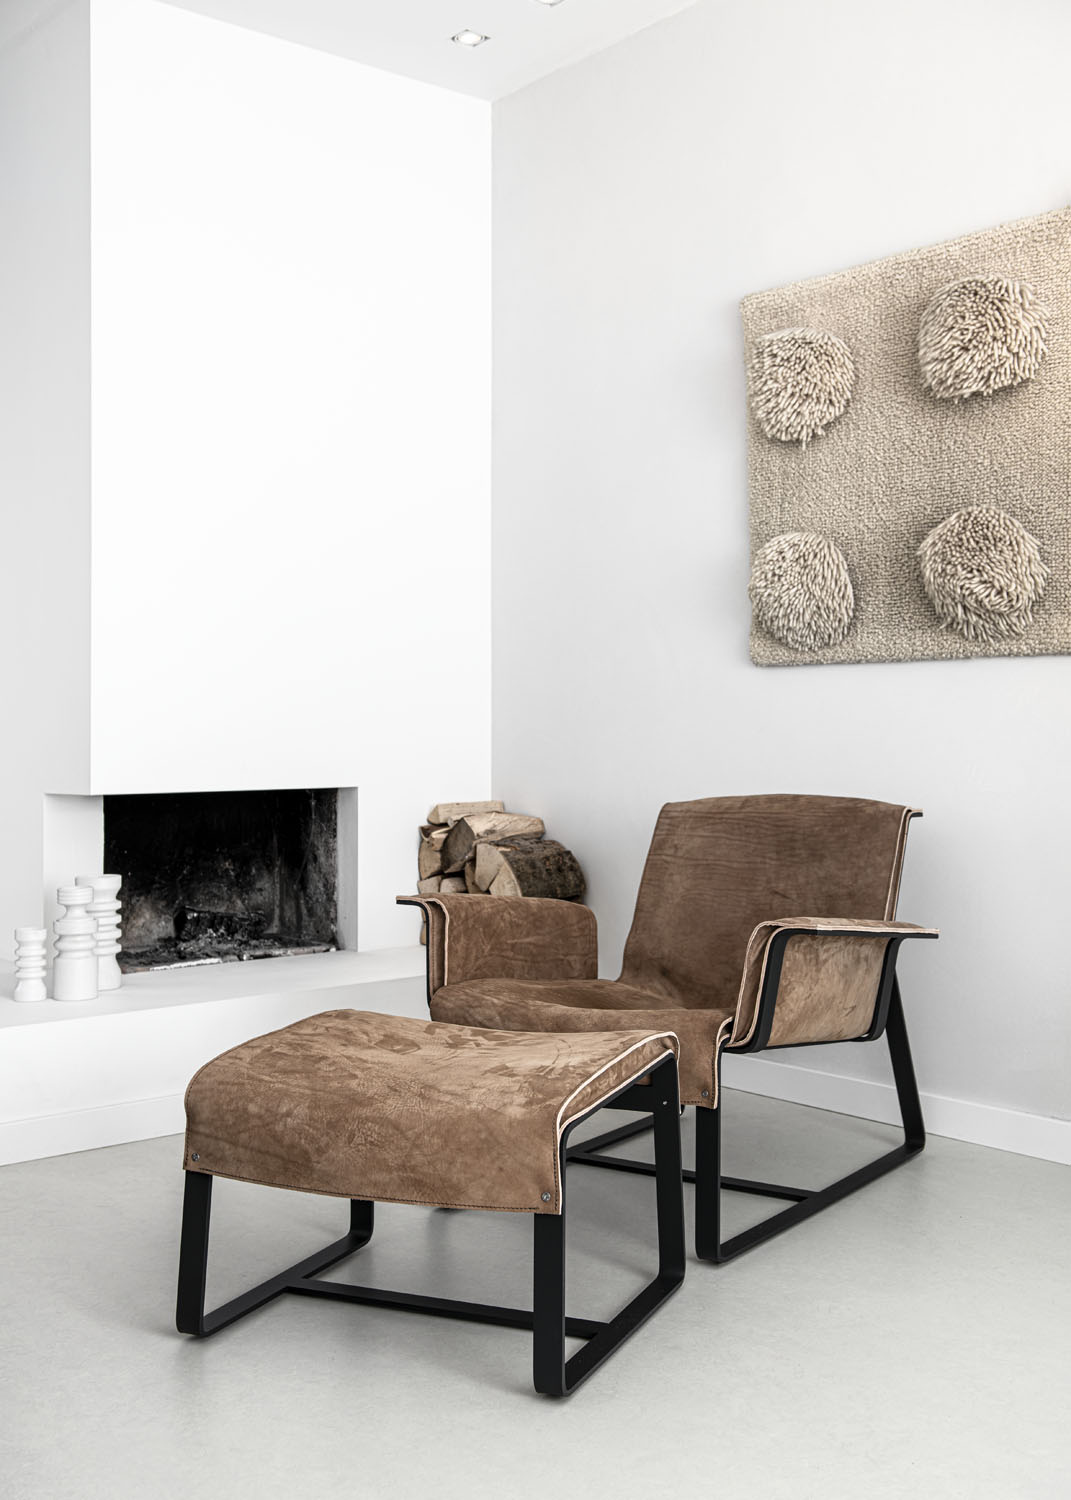 Biennale Interieur - Belgium's leading design and interior event - Founded-loungechair-cinnamon-and-ottoman.jpg